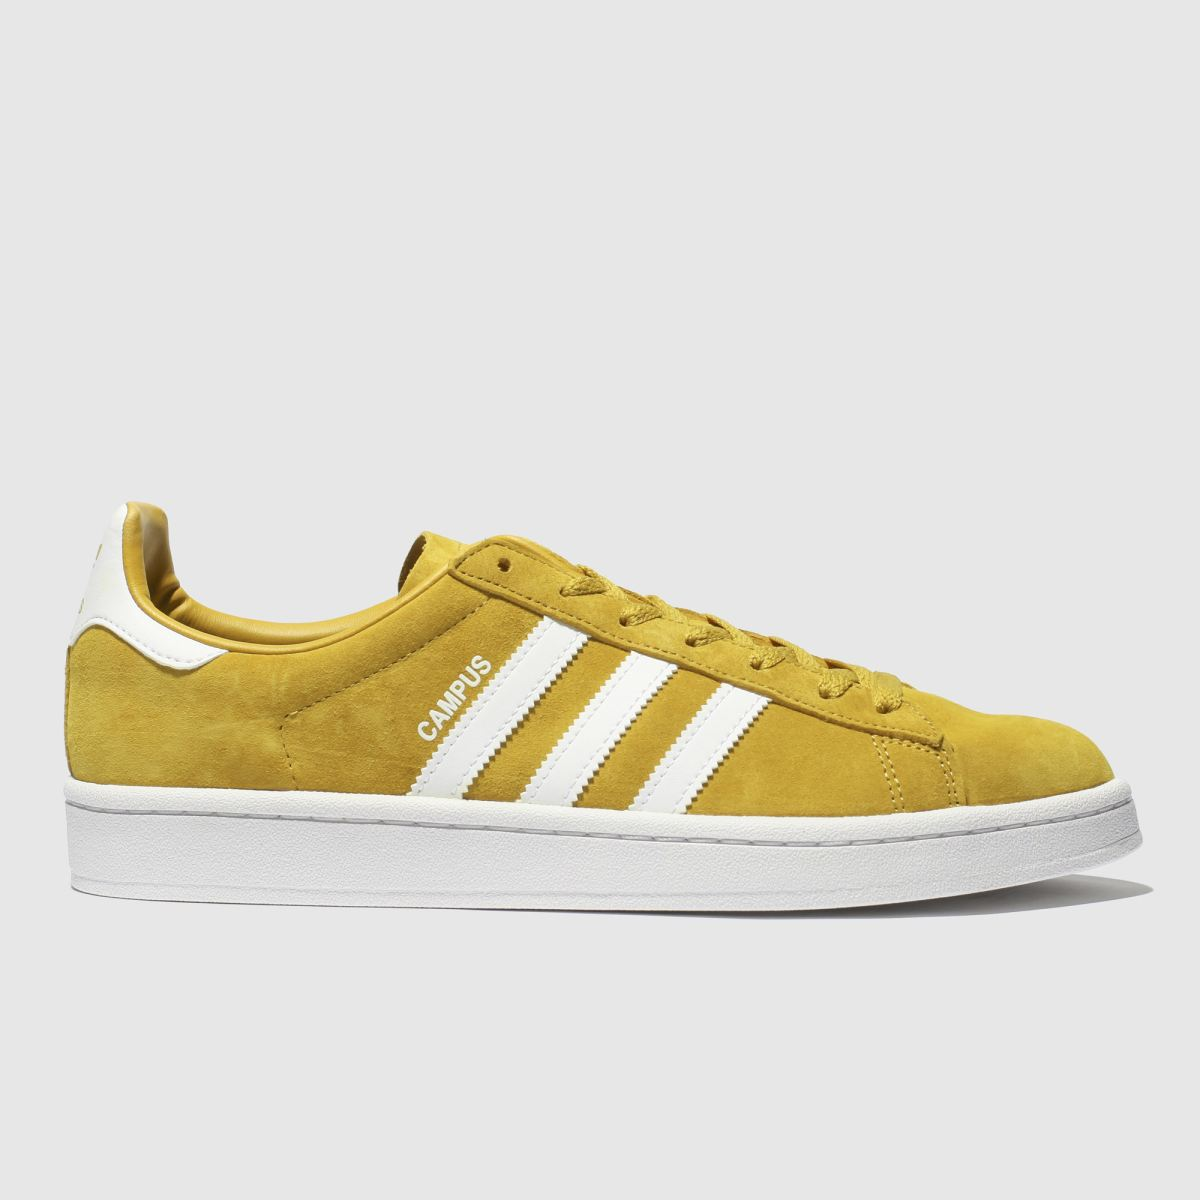 Adidas Yellow Campus Trainers